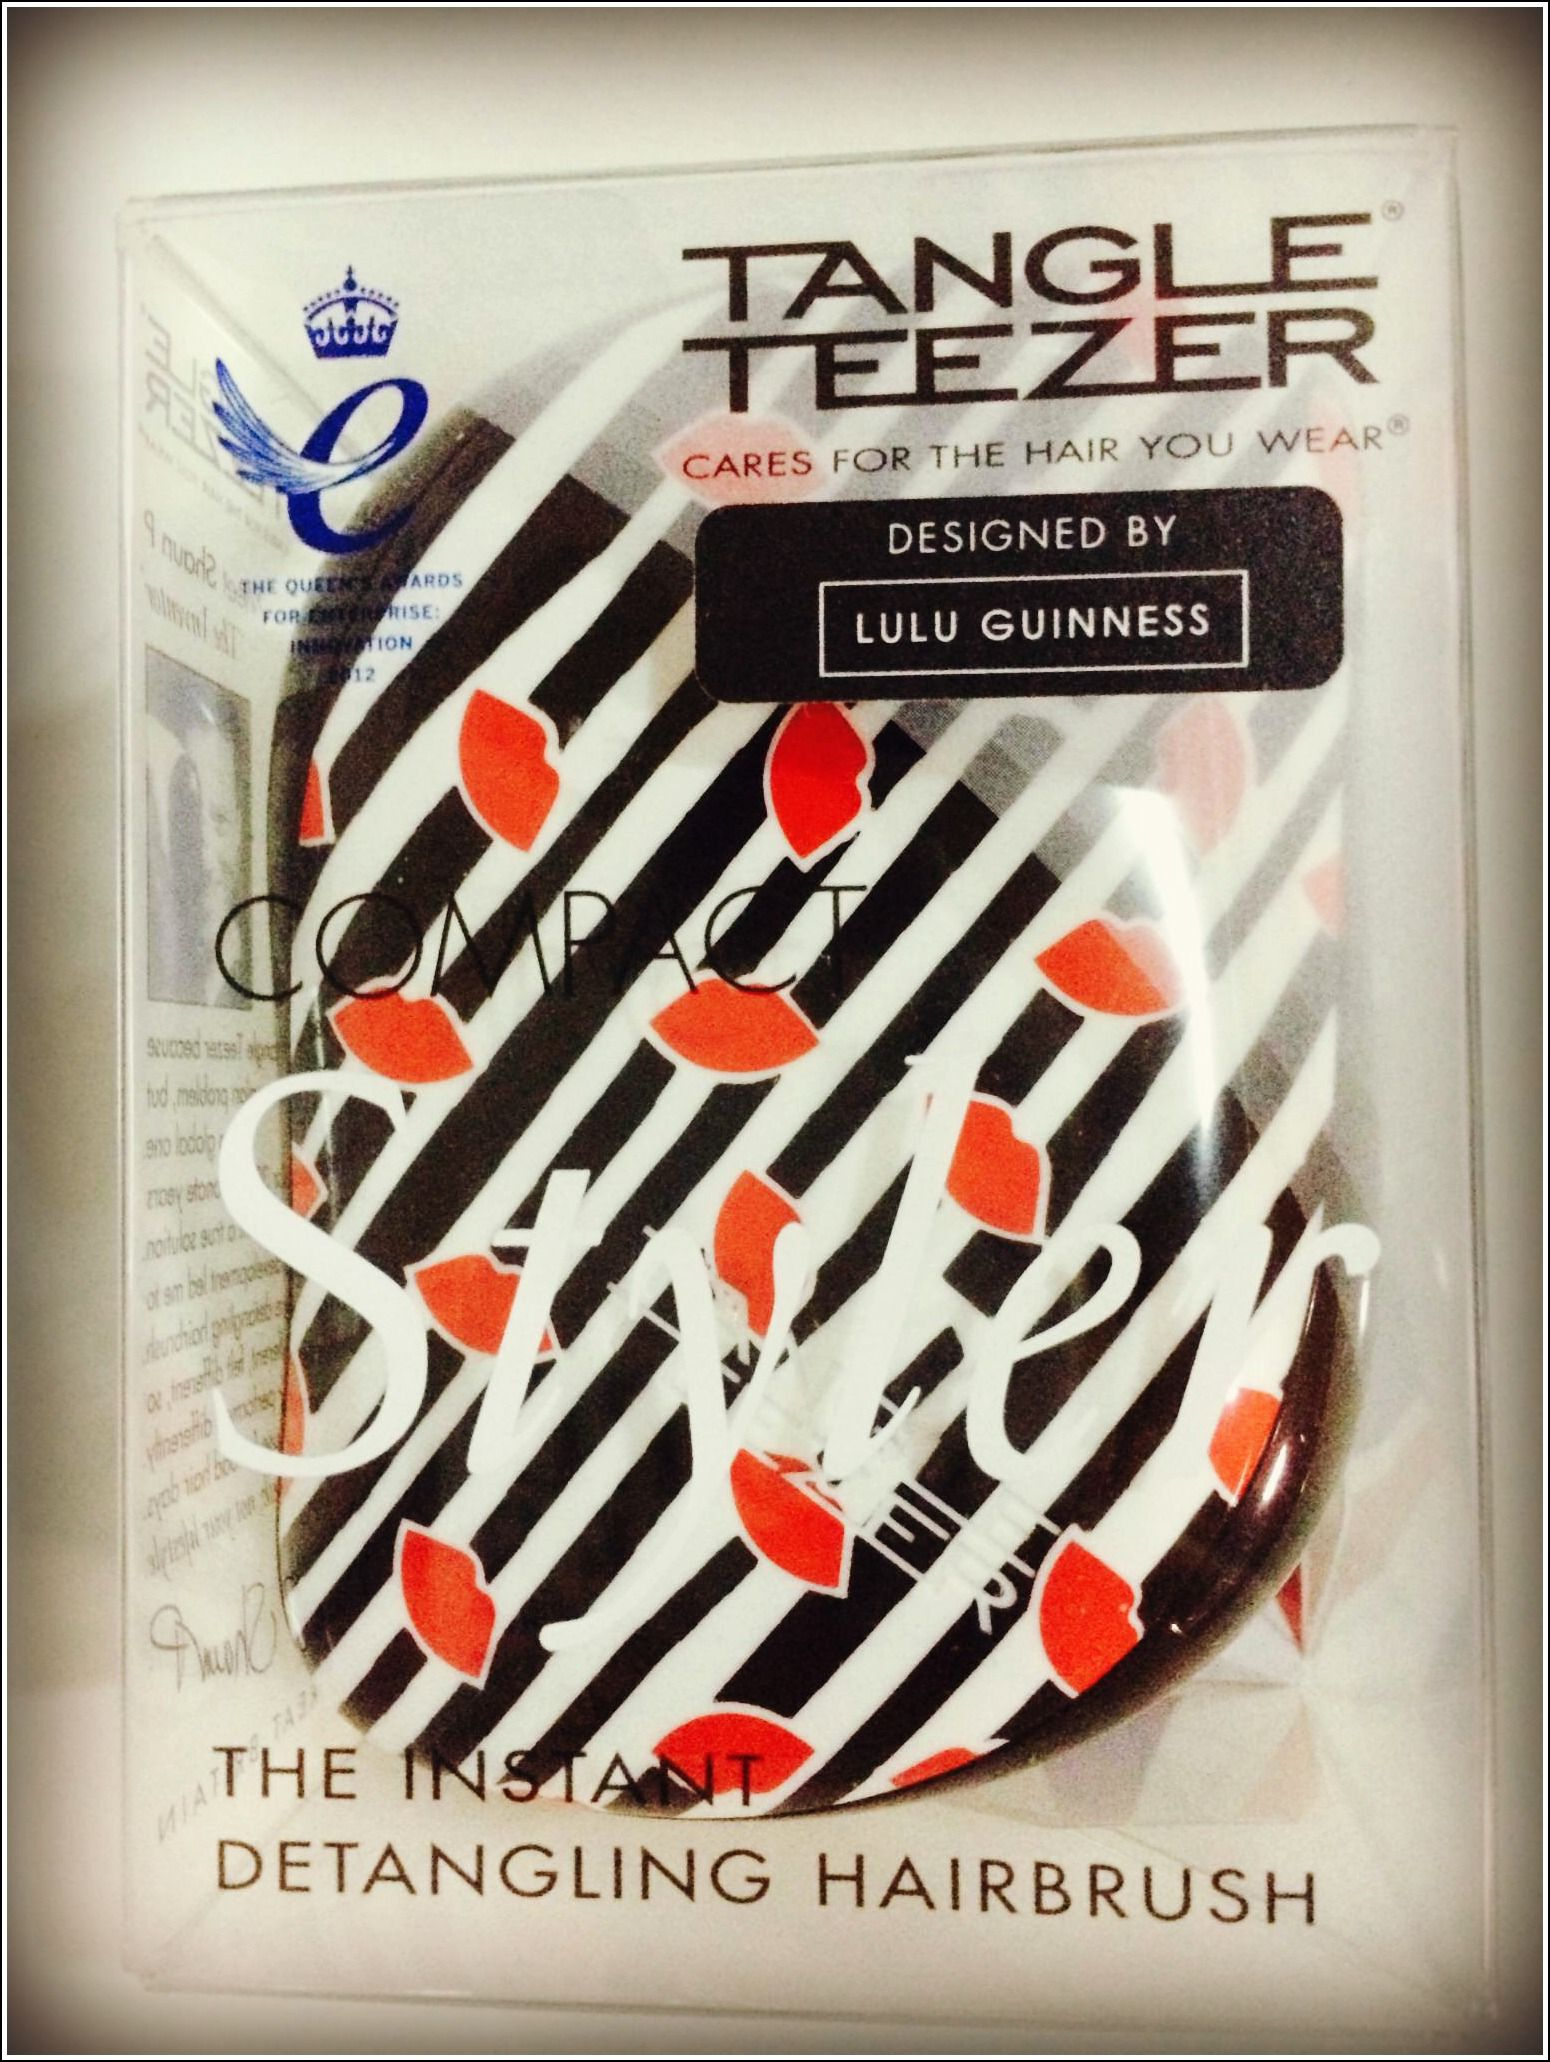 Tangle Teezer - is it worth the hype?